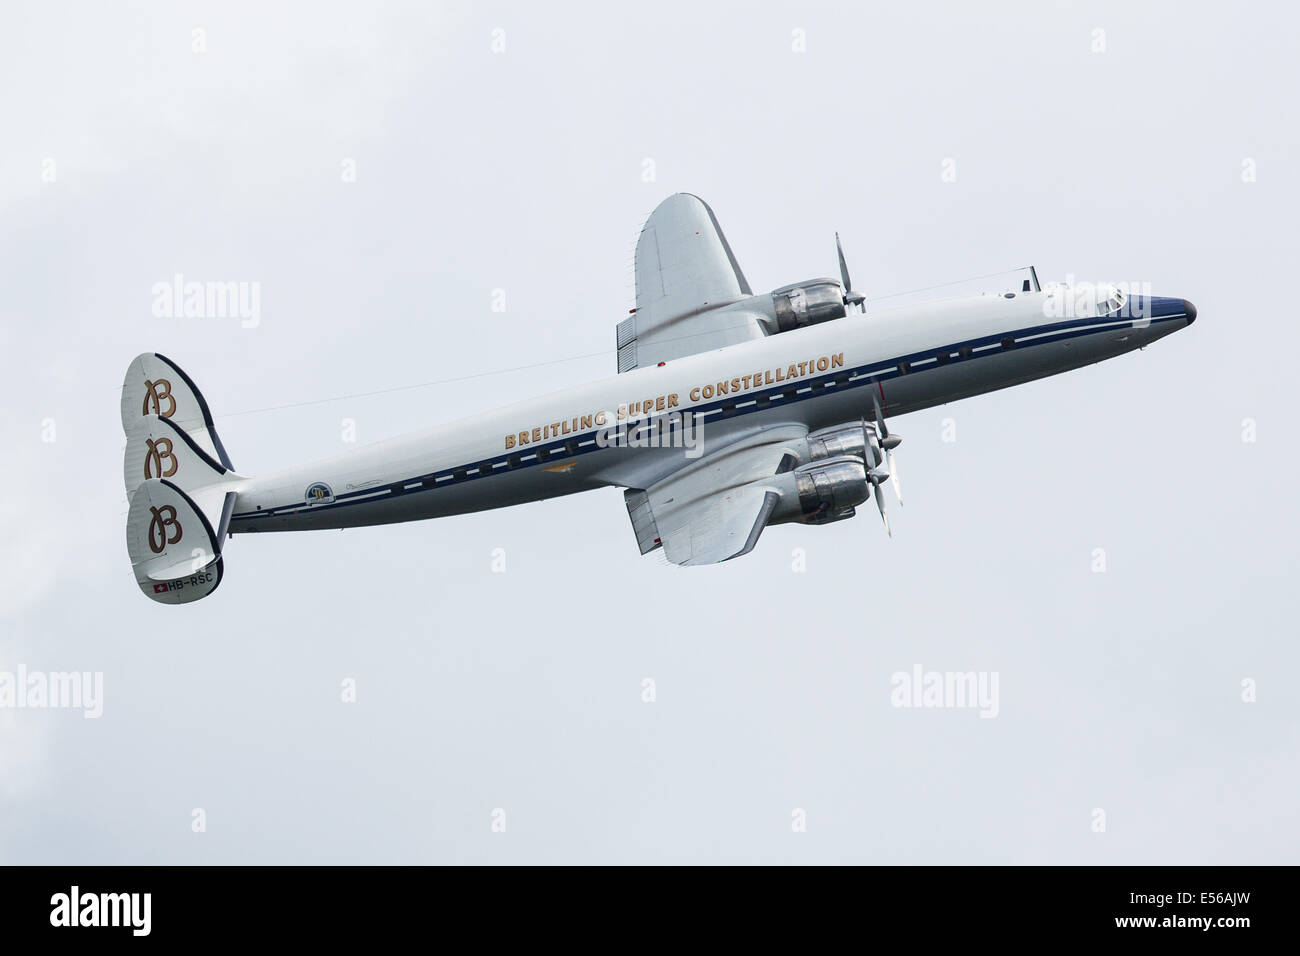 Breitling Lockheed L-1049 Super Constellation Jetliner aircraft flying at  Farnborough Airshow 2014